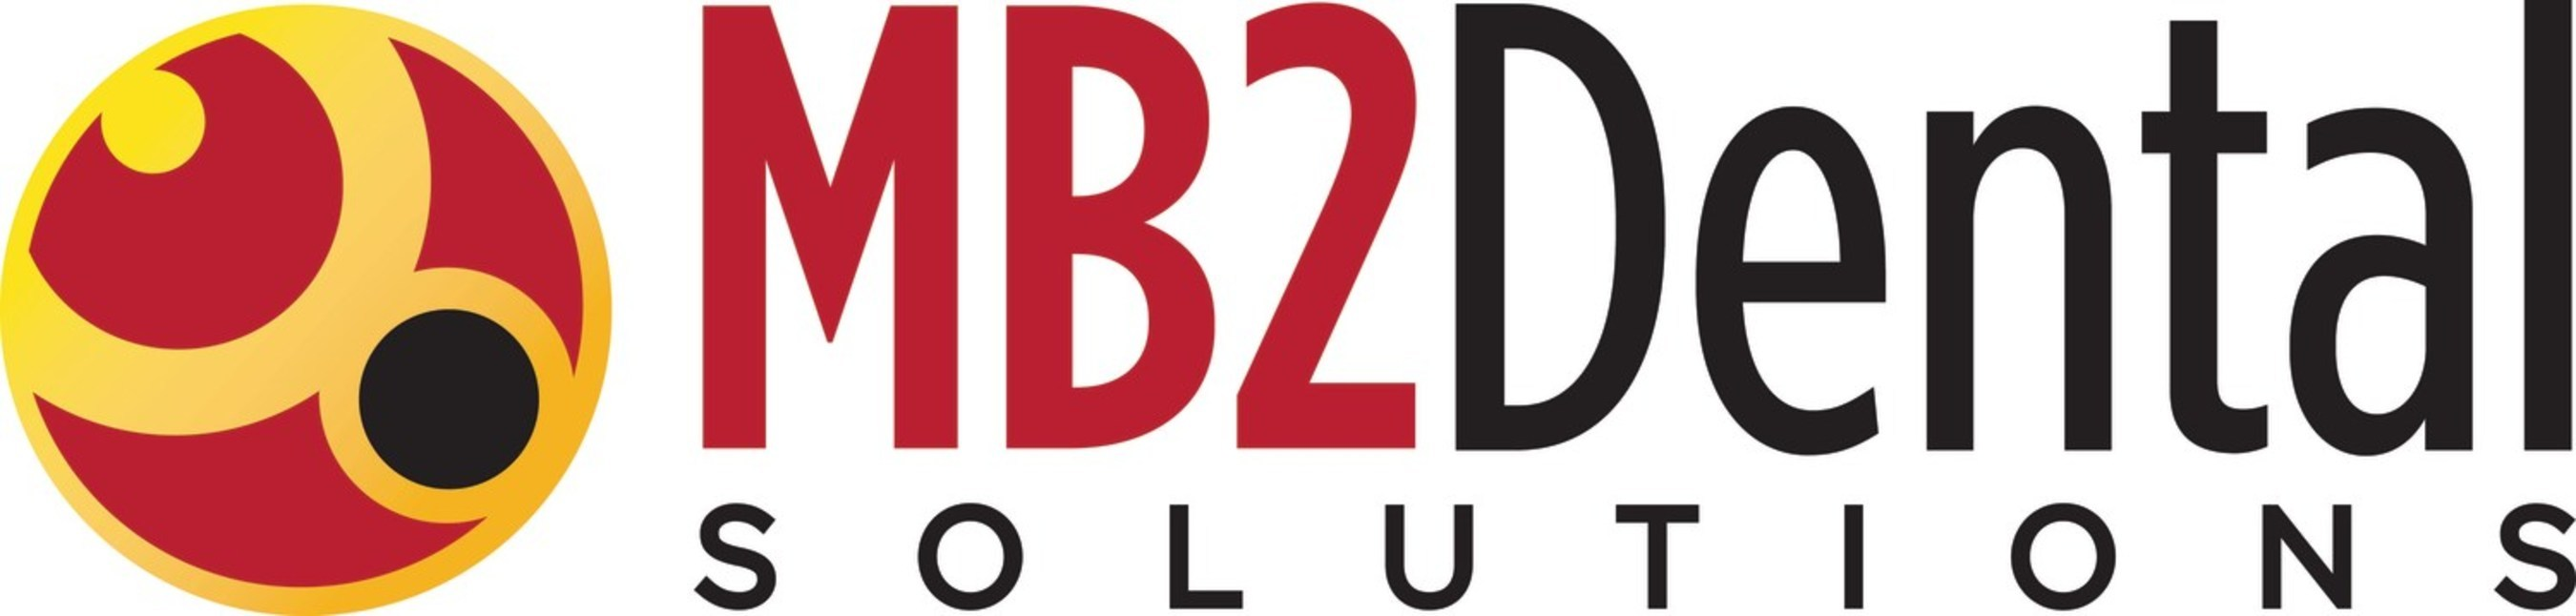 Raising Over $93,000 for Hurricane Harvey Victims, MB2 Dental Solutions Produces Touching Video Recapping How They've Overcome Harvey Together